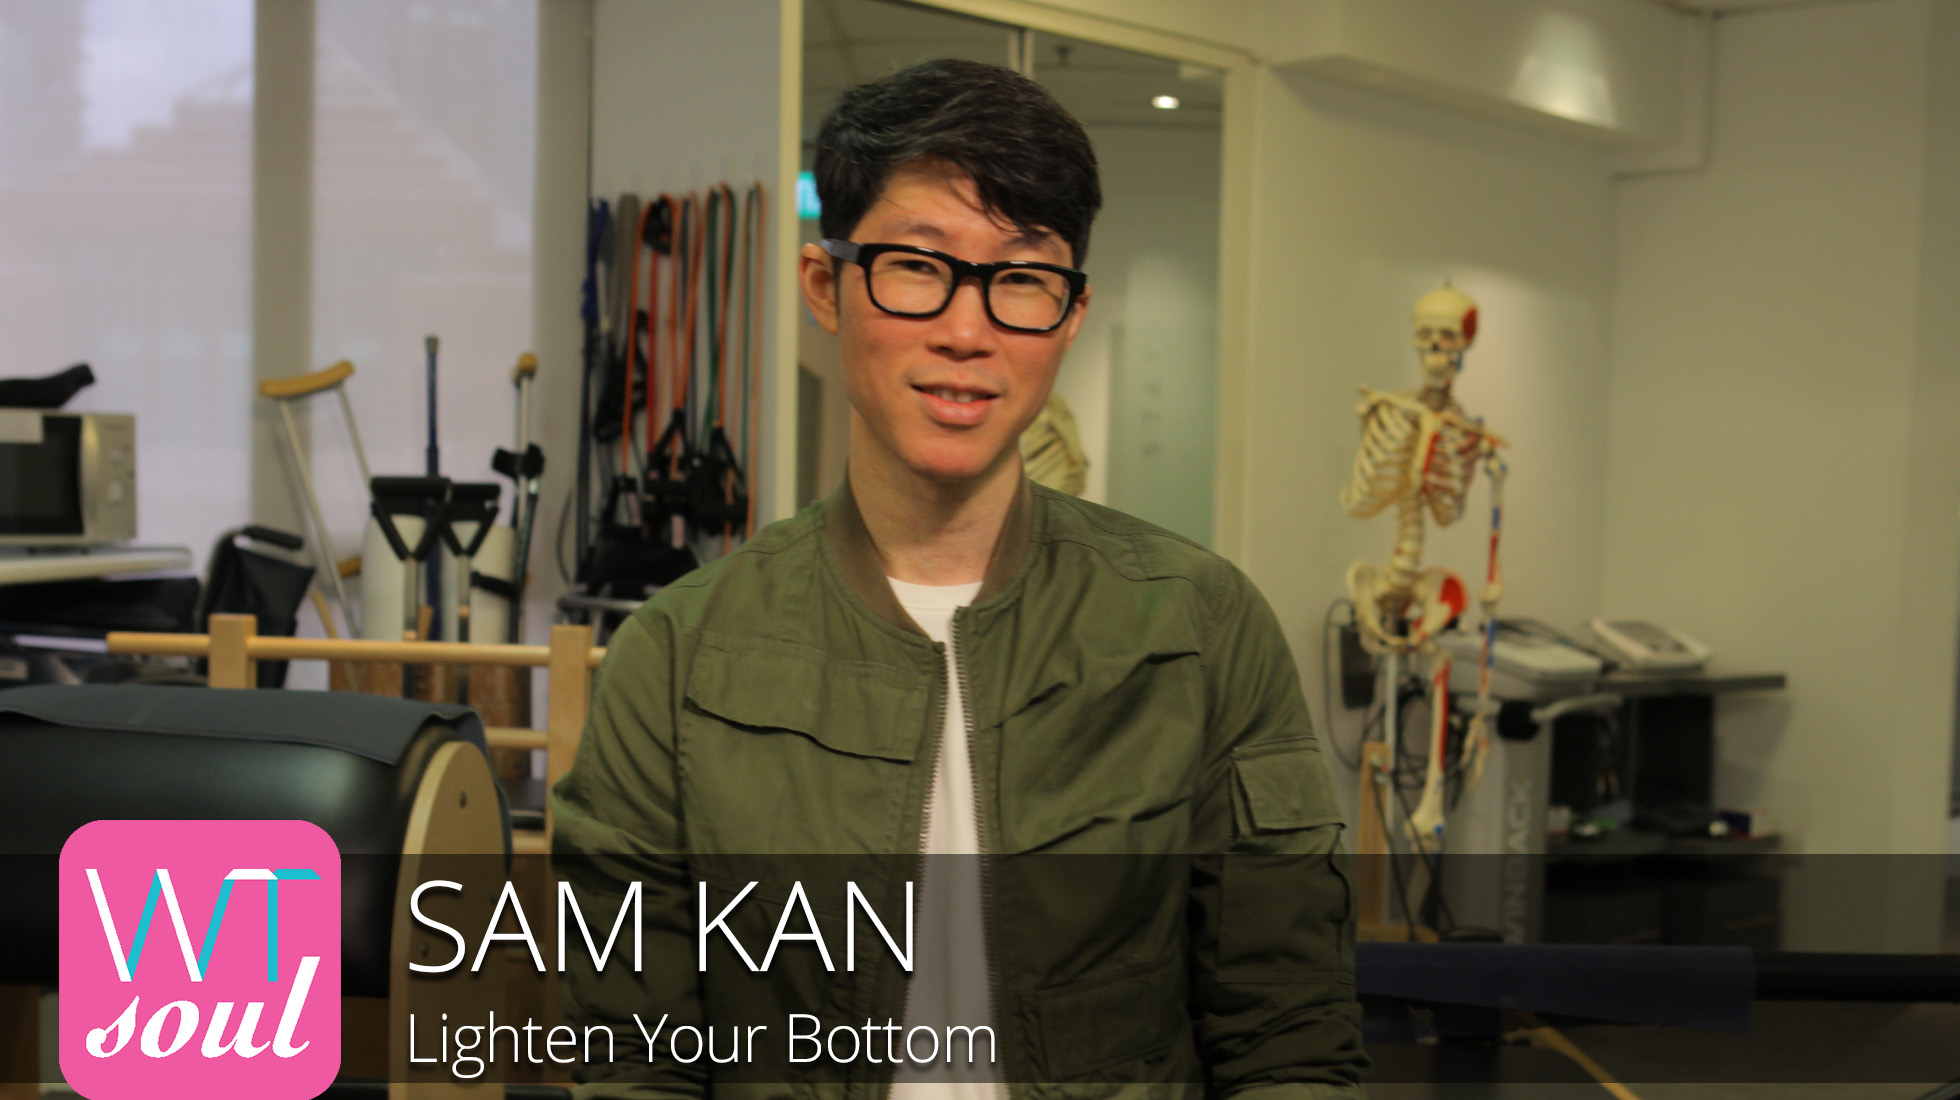 sam kan lighten your bottom